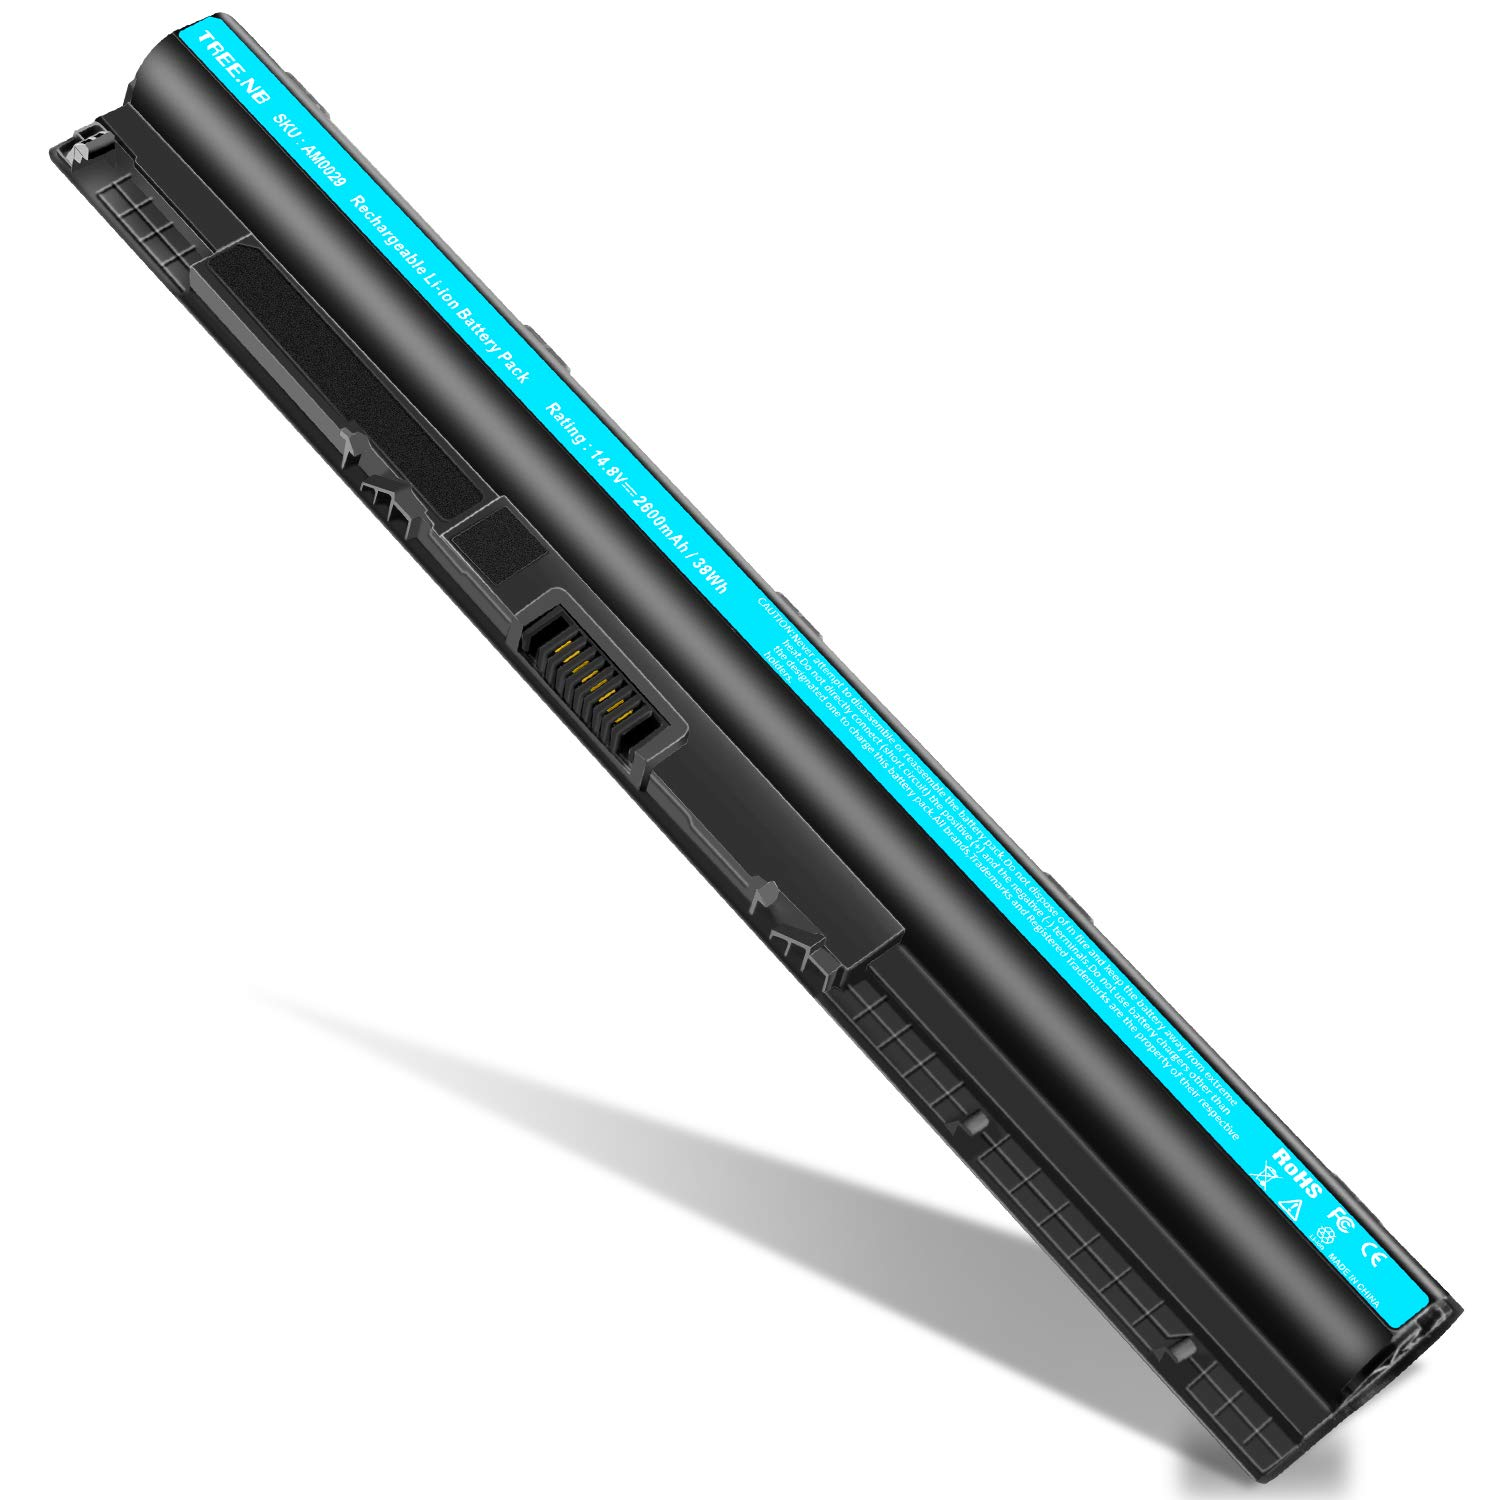 M5Y1K Battery for 4-Cell Lithium-Ion Battery for Dell Inspiron, Latitude and Vostro (type M5Y1K)